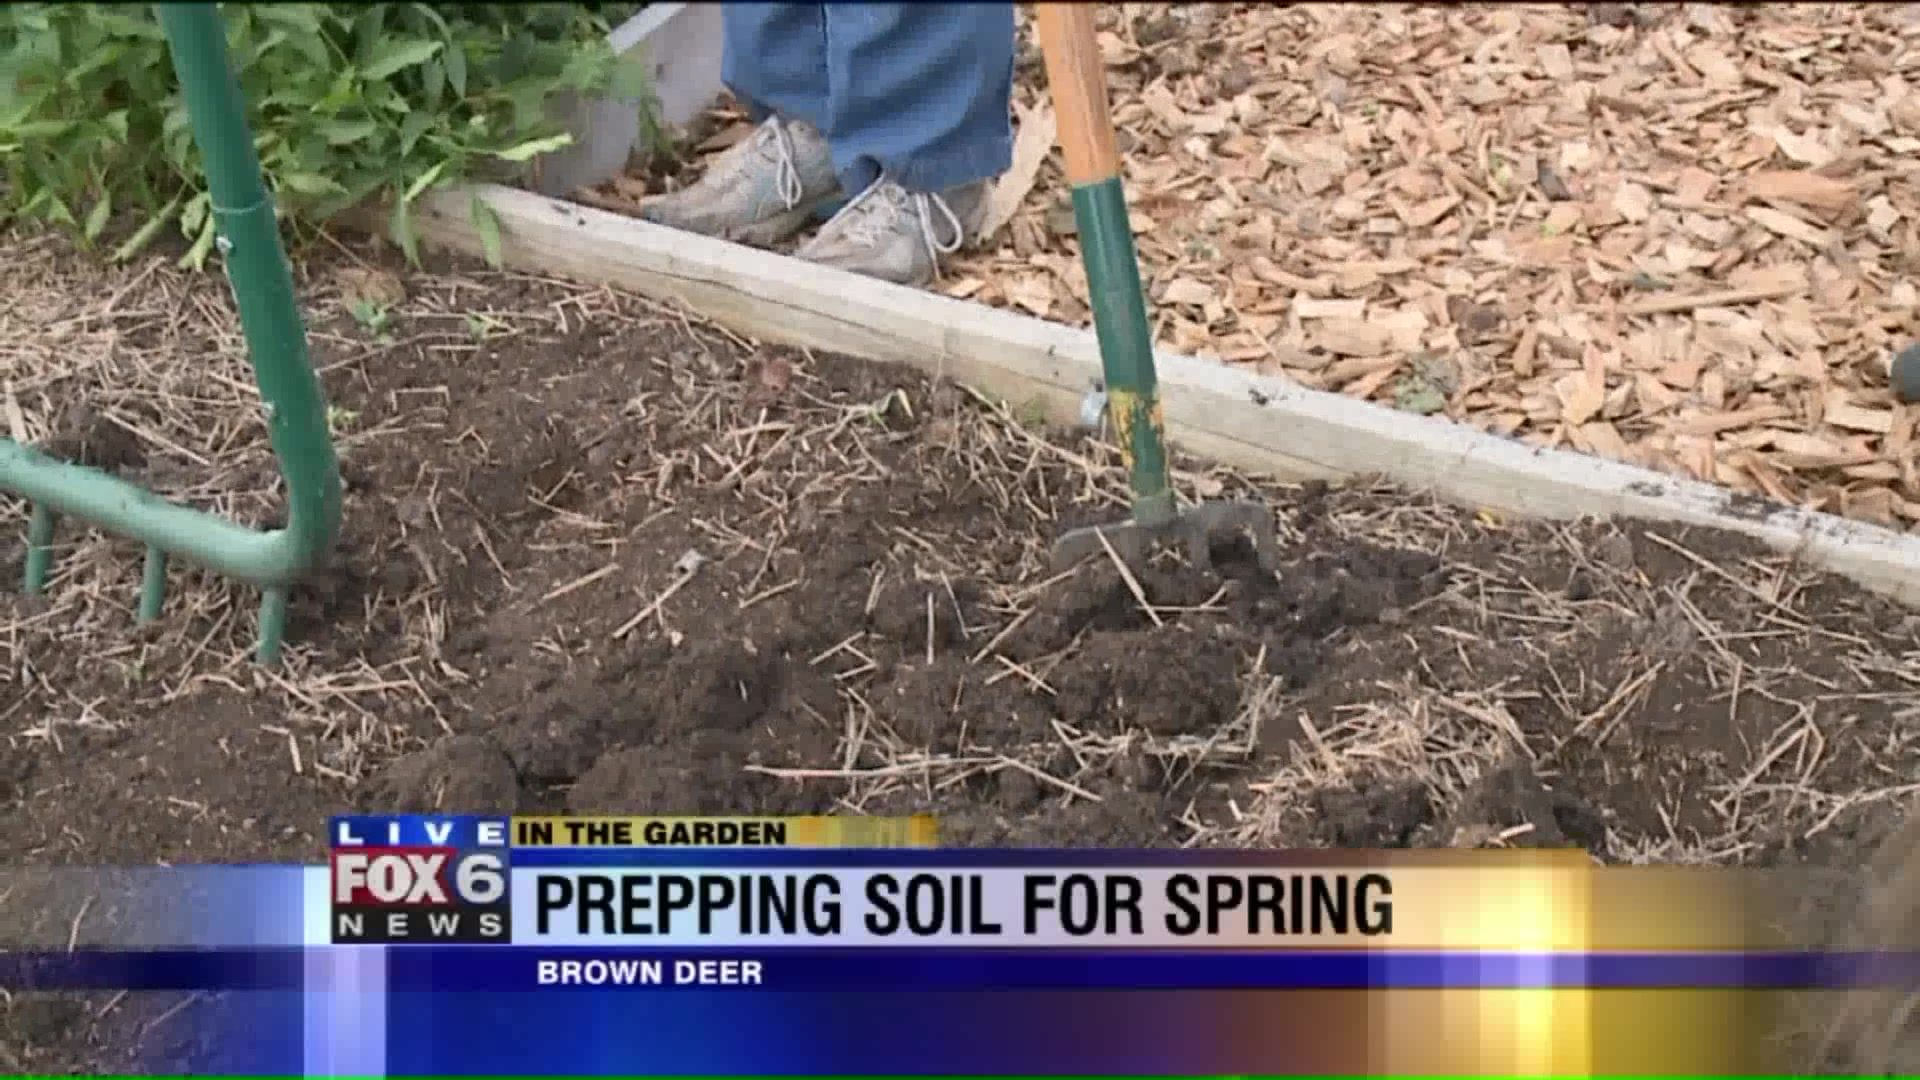 How To Prepare Your Soil For The Spring